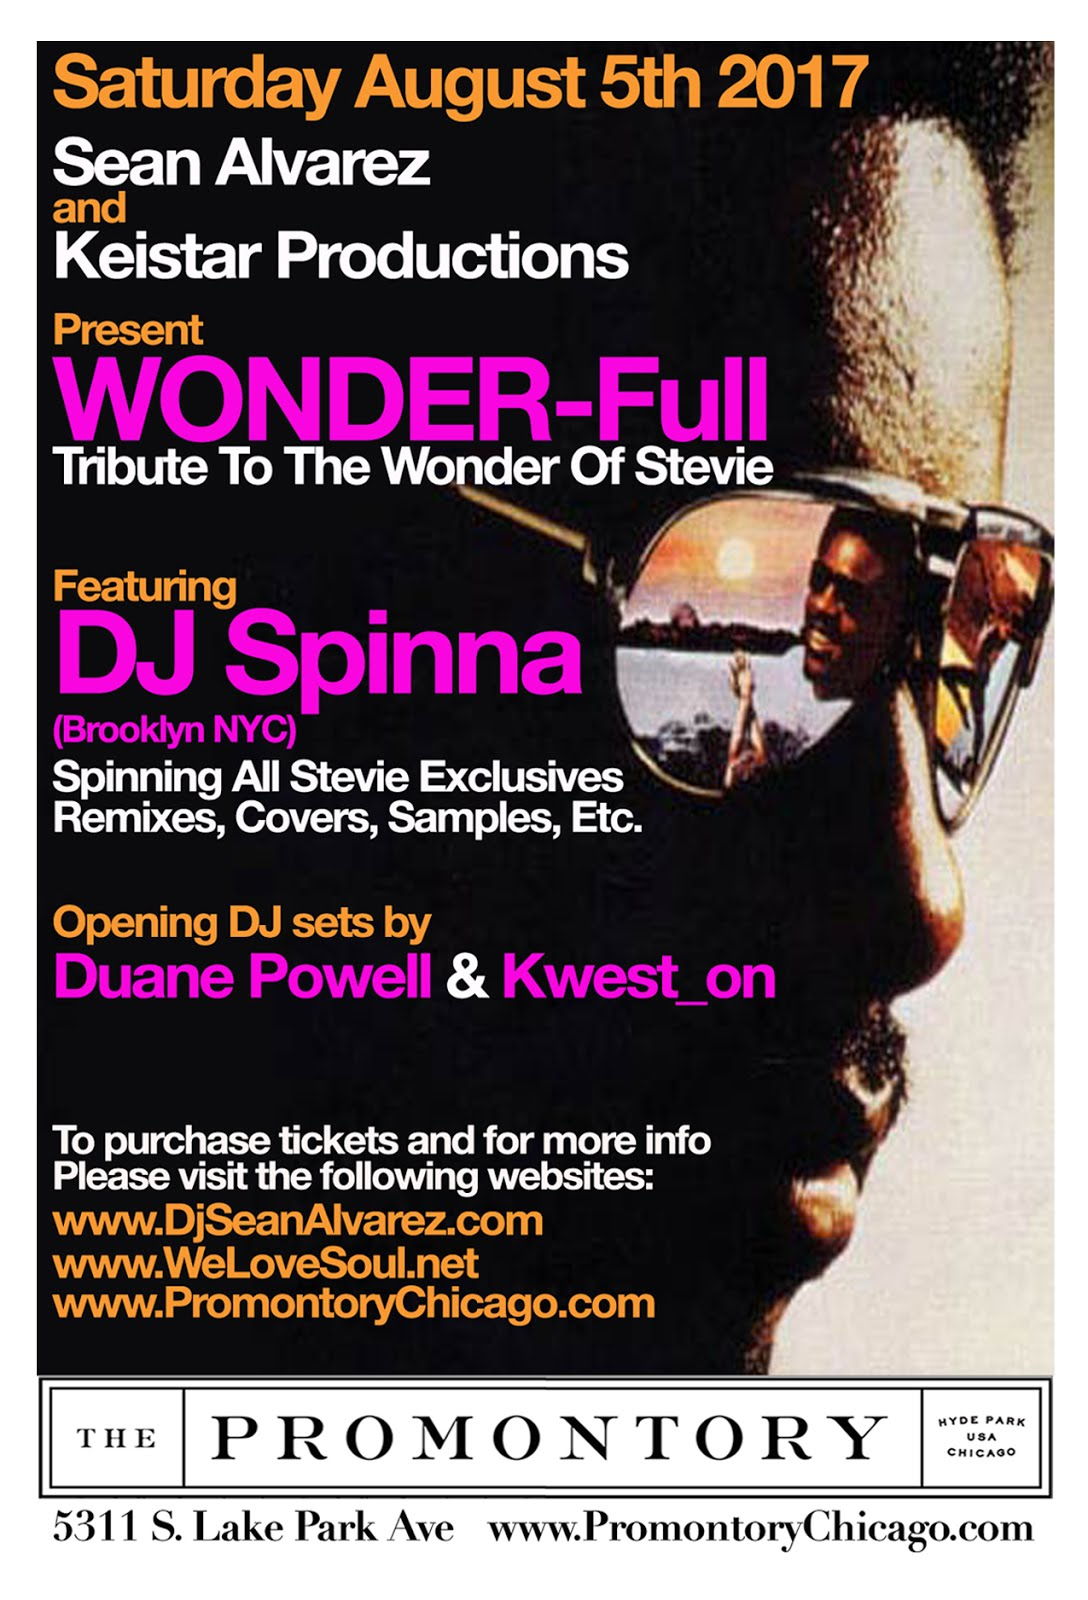 Saturday August 5th: WONDER-Full Tribute To The Wonder of Stevie